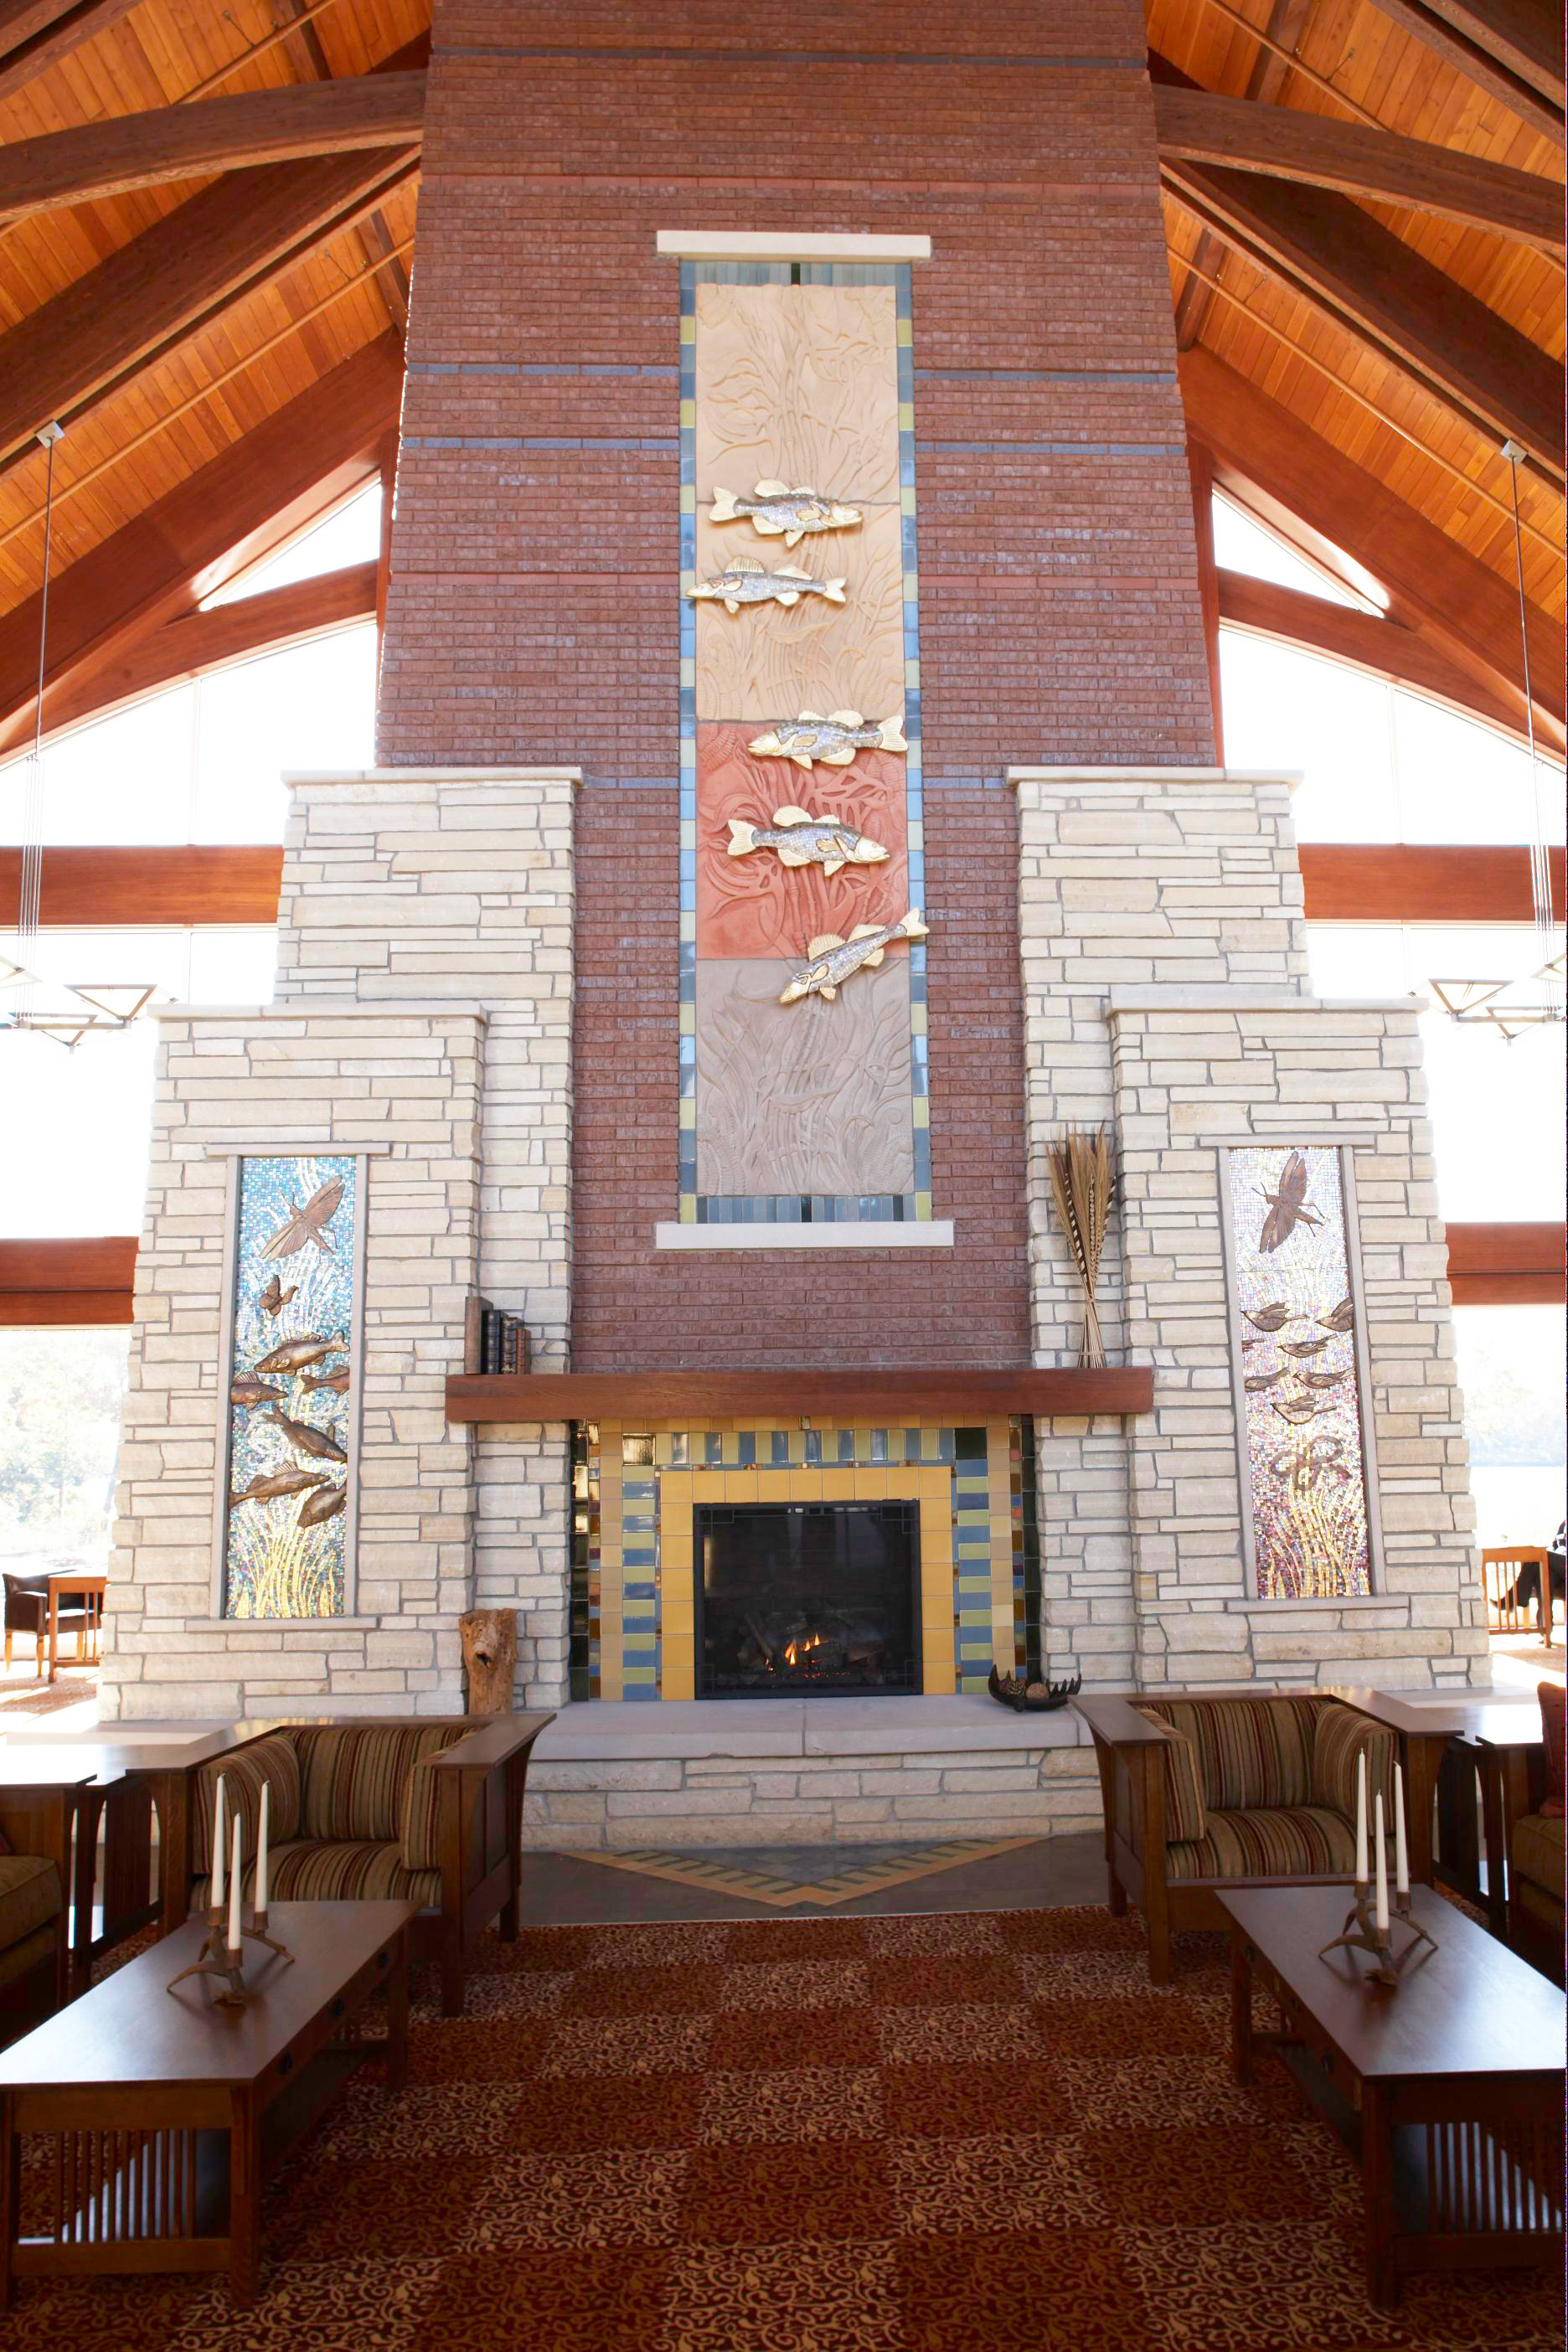 Moravia, Iowa: Honey Creek Resort